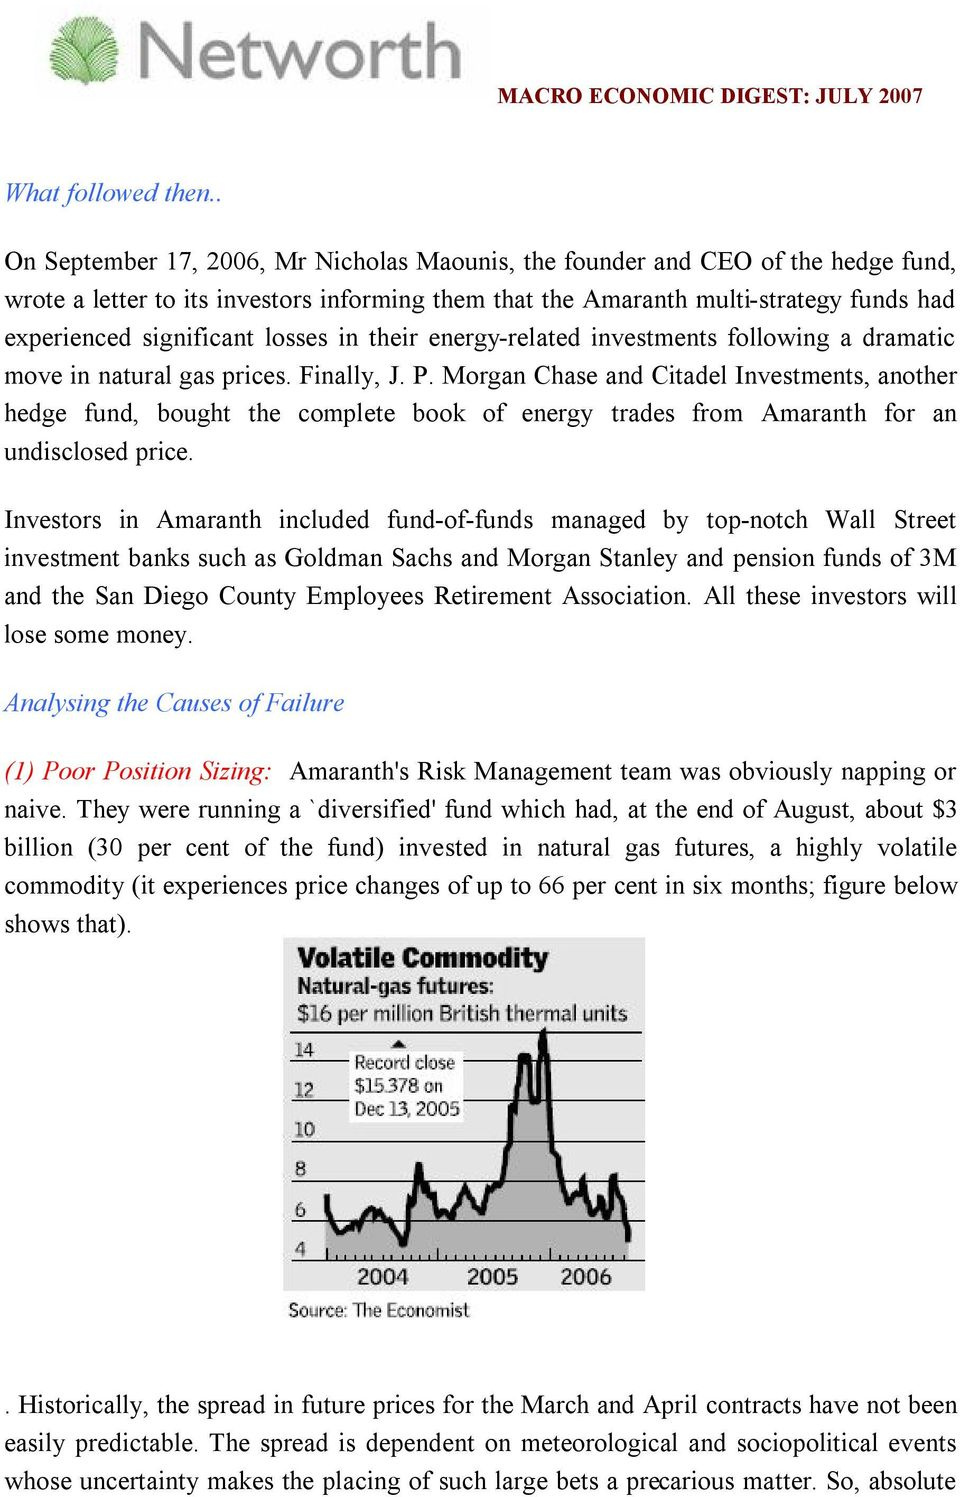 Amaranth Debacle : Lessons in Risk Management - PDF